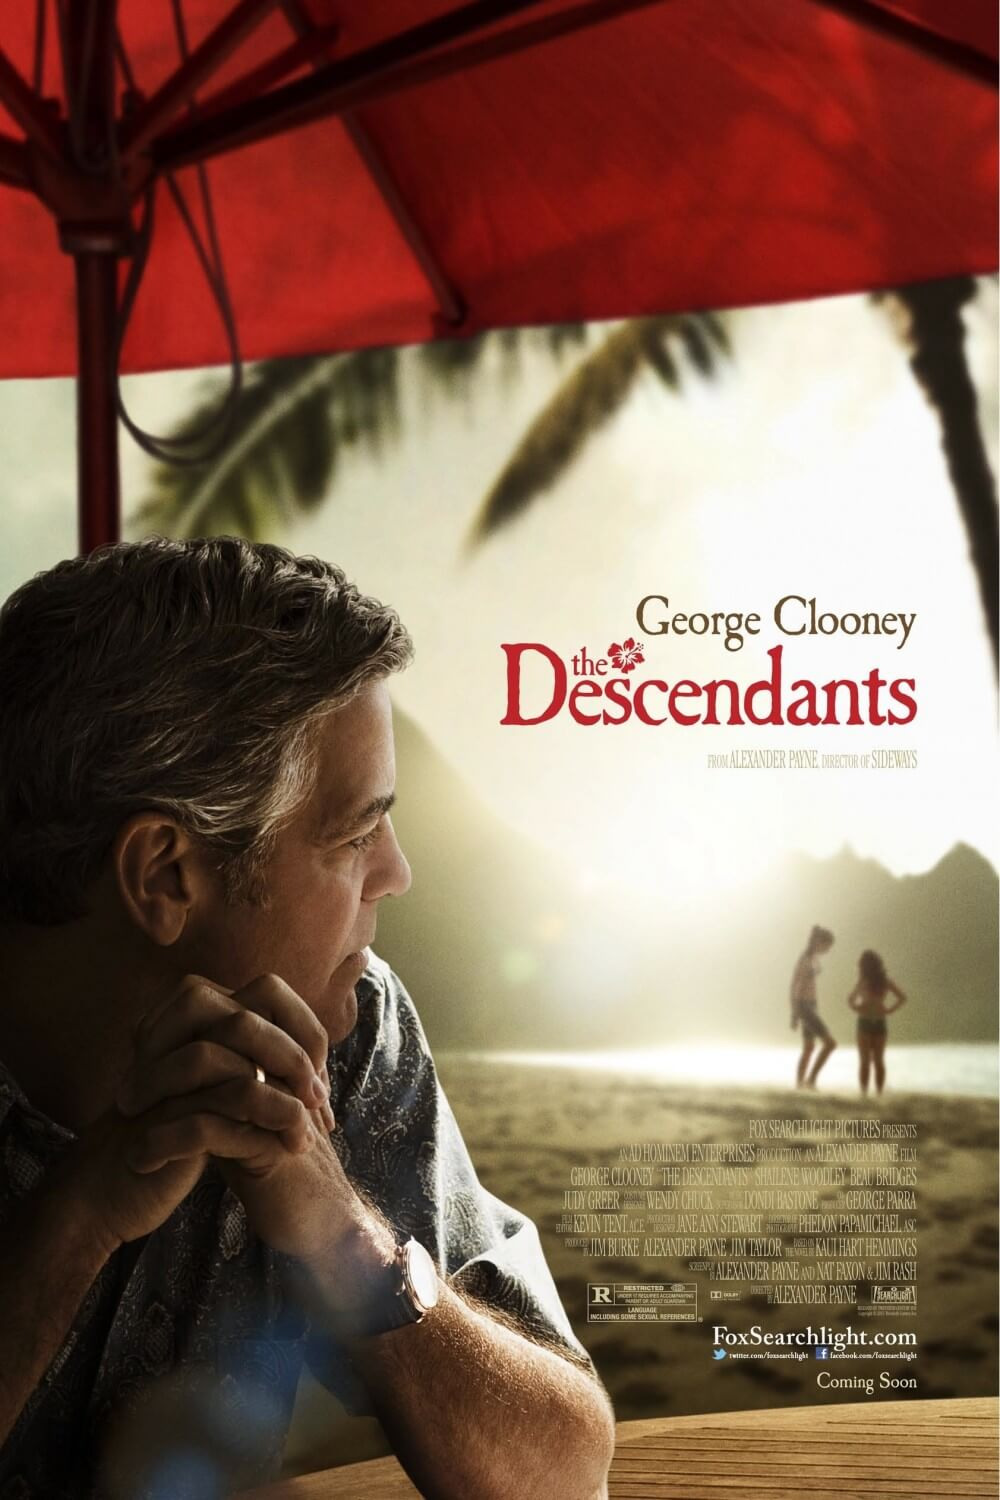 At the movies: *The Descendants*